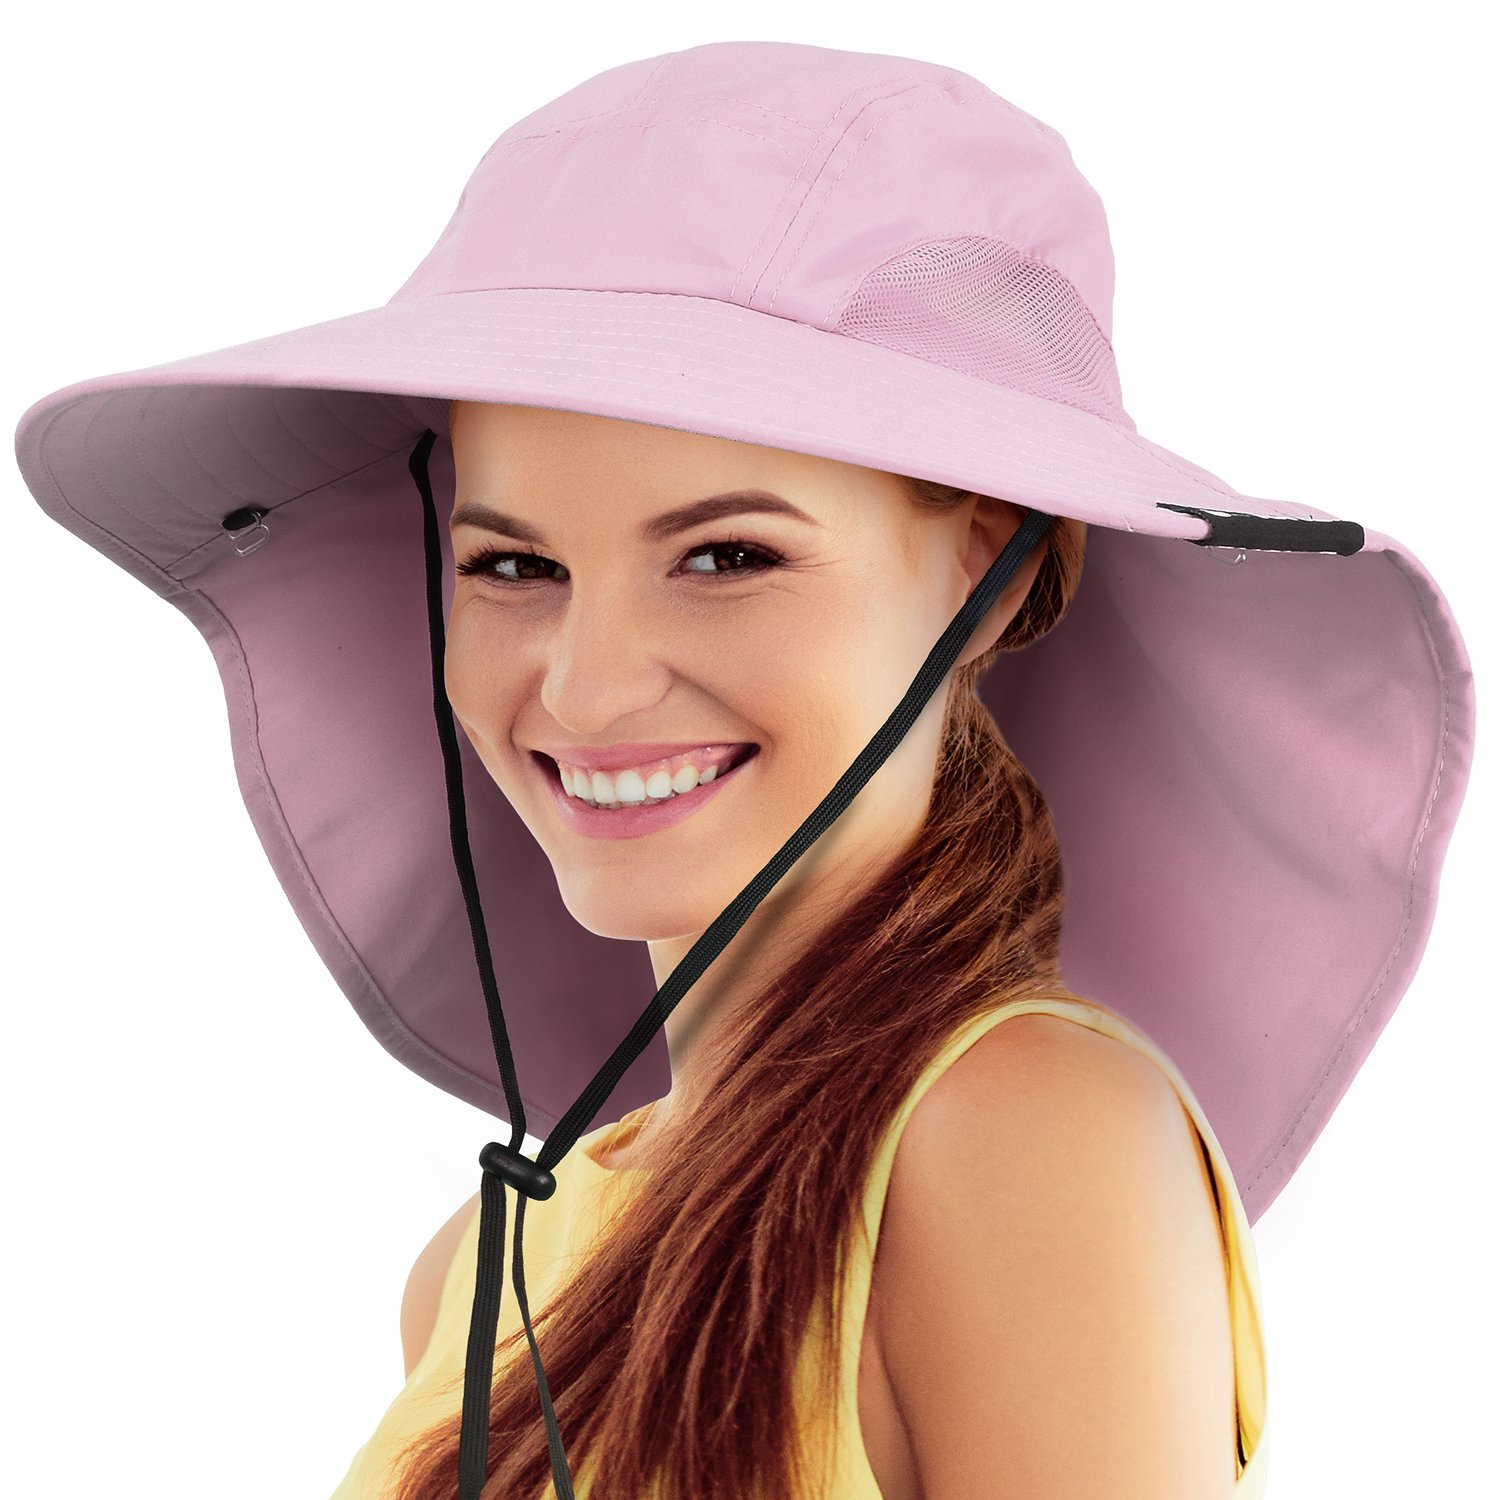 6bbd4ec265f61 Safari Sun Hats for Women Fishing Hiking Cap with Neck Flap Wide Brim Hat